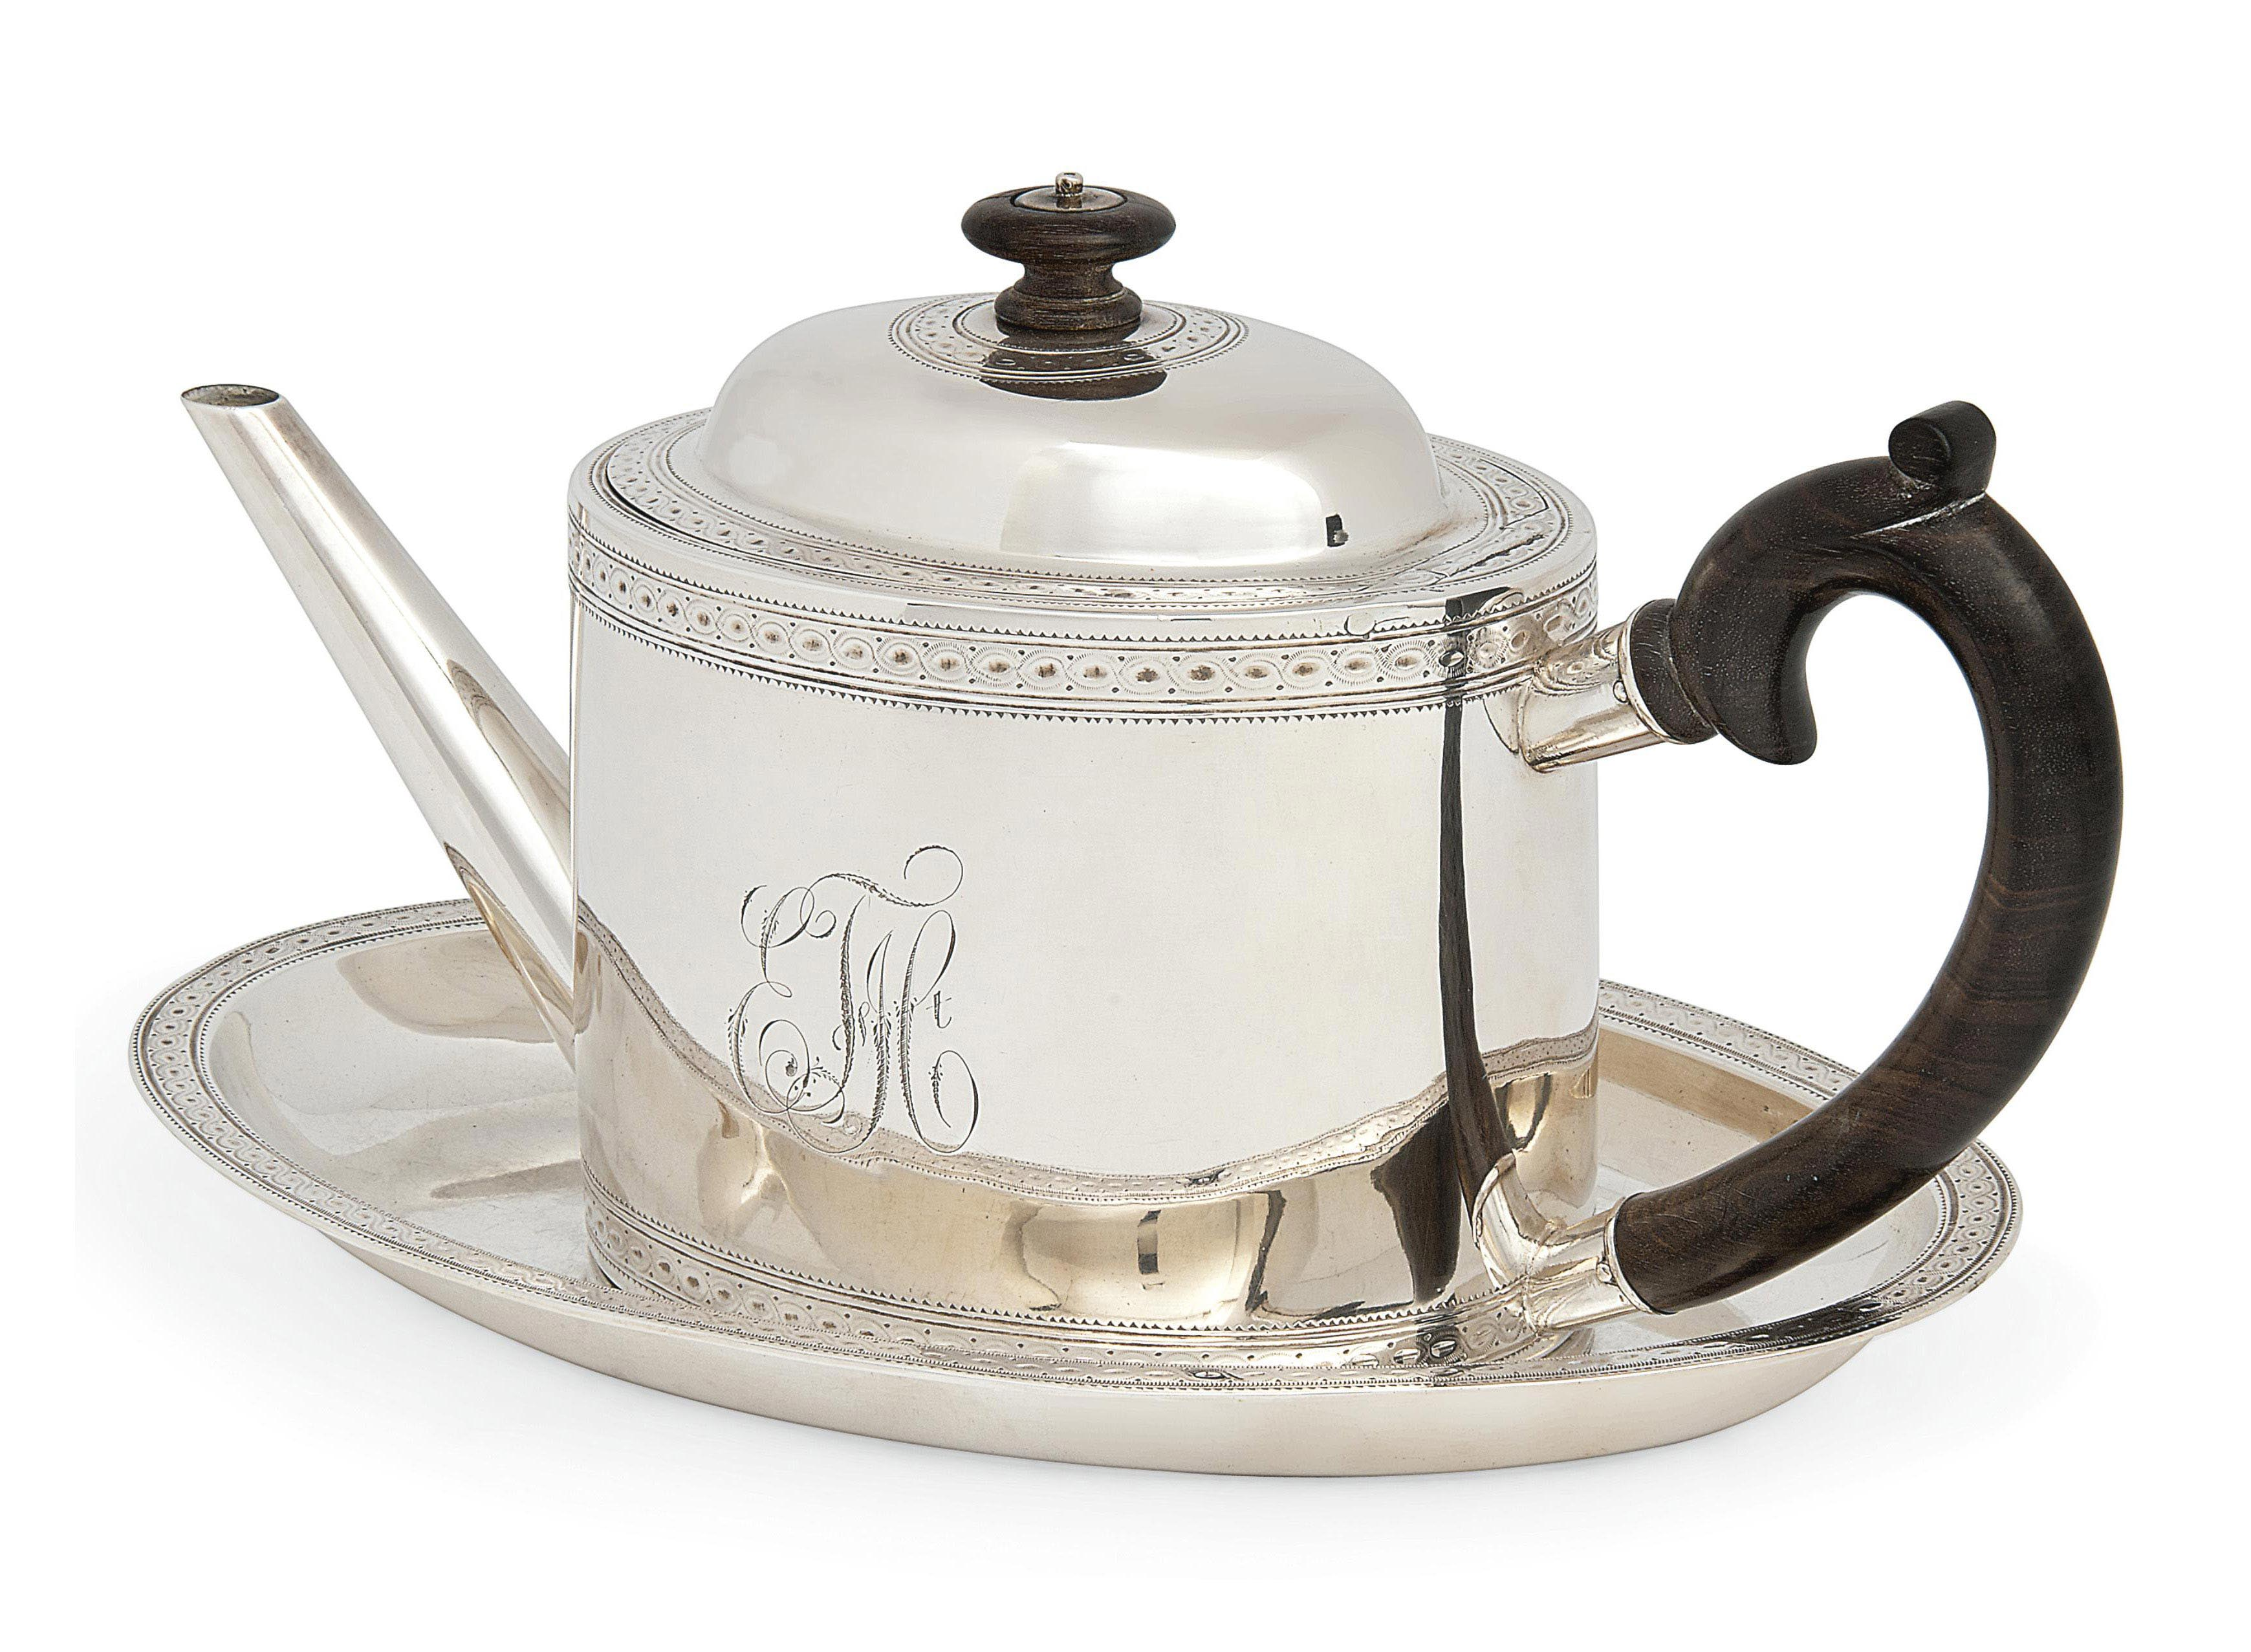 A SWISS SILVER TEAPOT AND STAND